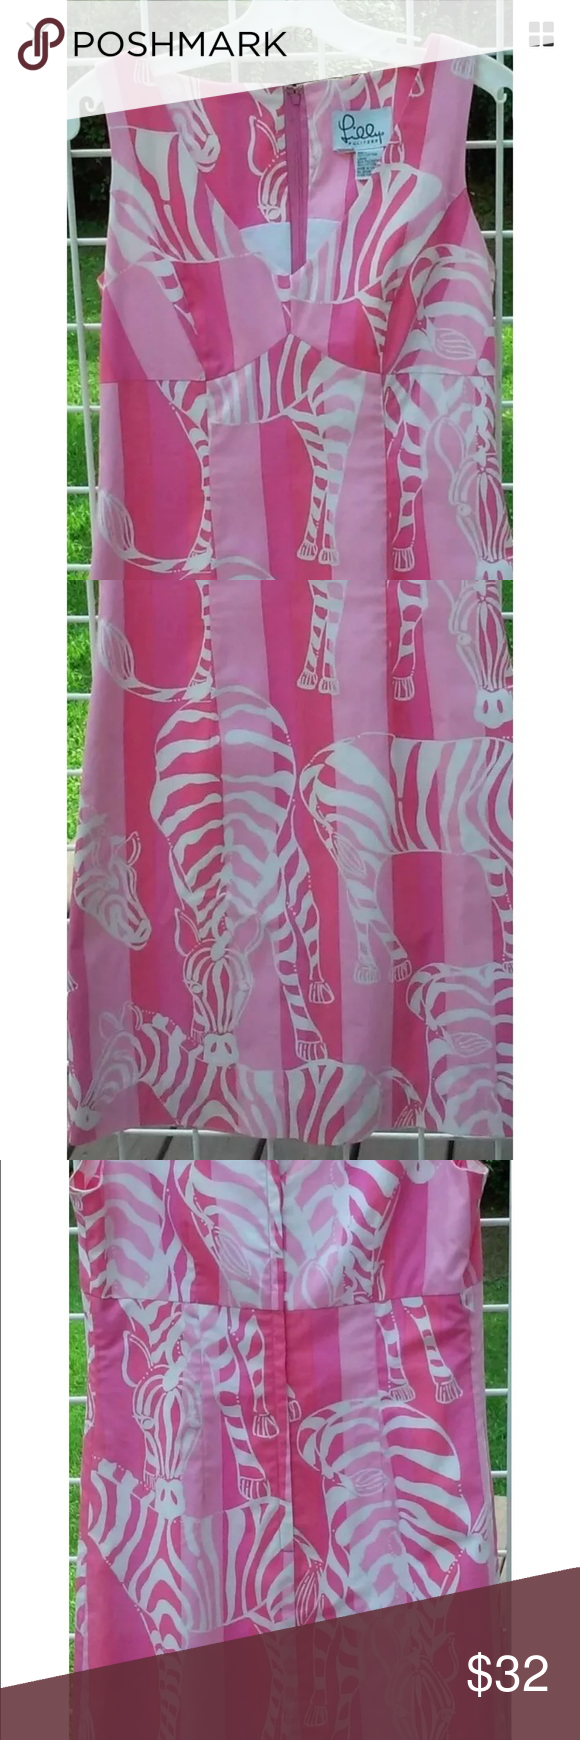 Lilly Pulitzer Dress Beautiful Lilly Pulitzer dress pink zebra print size 4 like new!!! Lilly Pulitzer Dresses